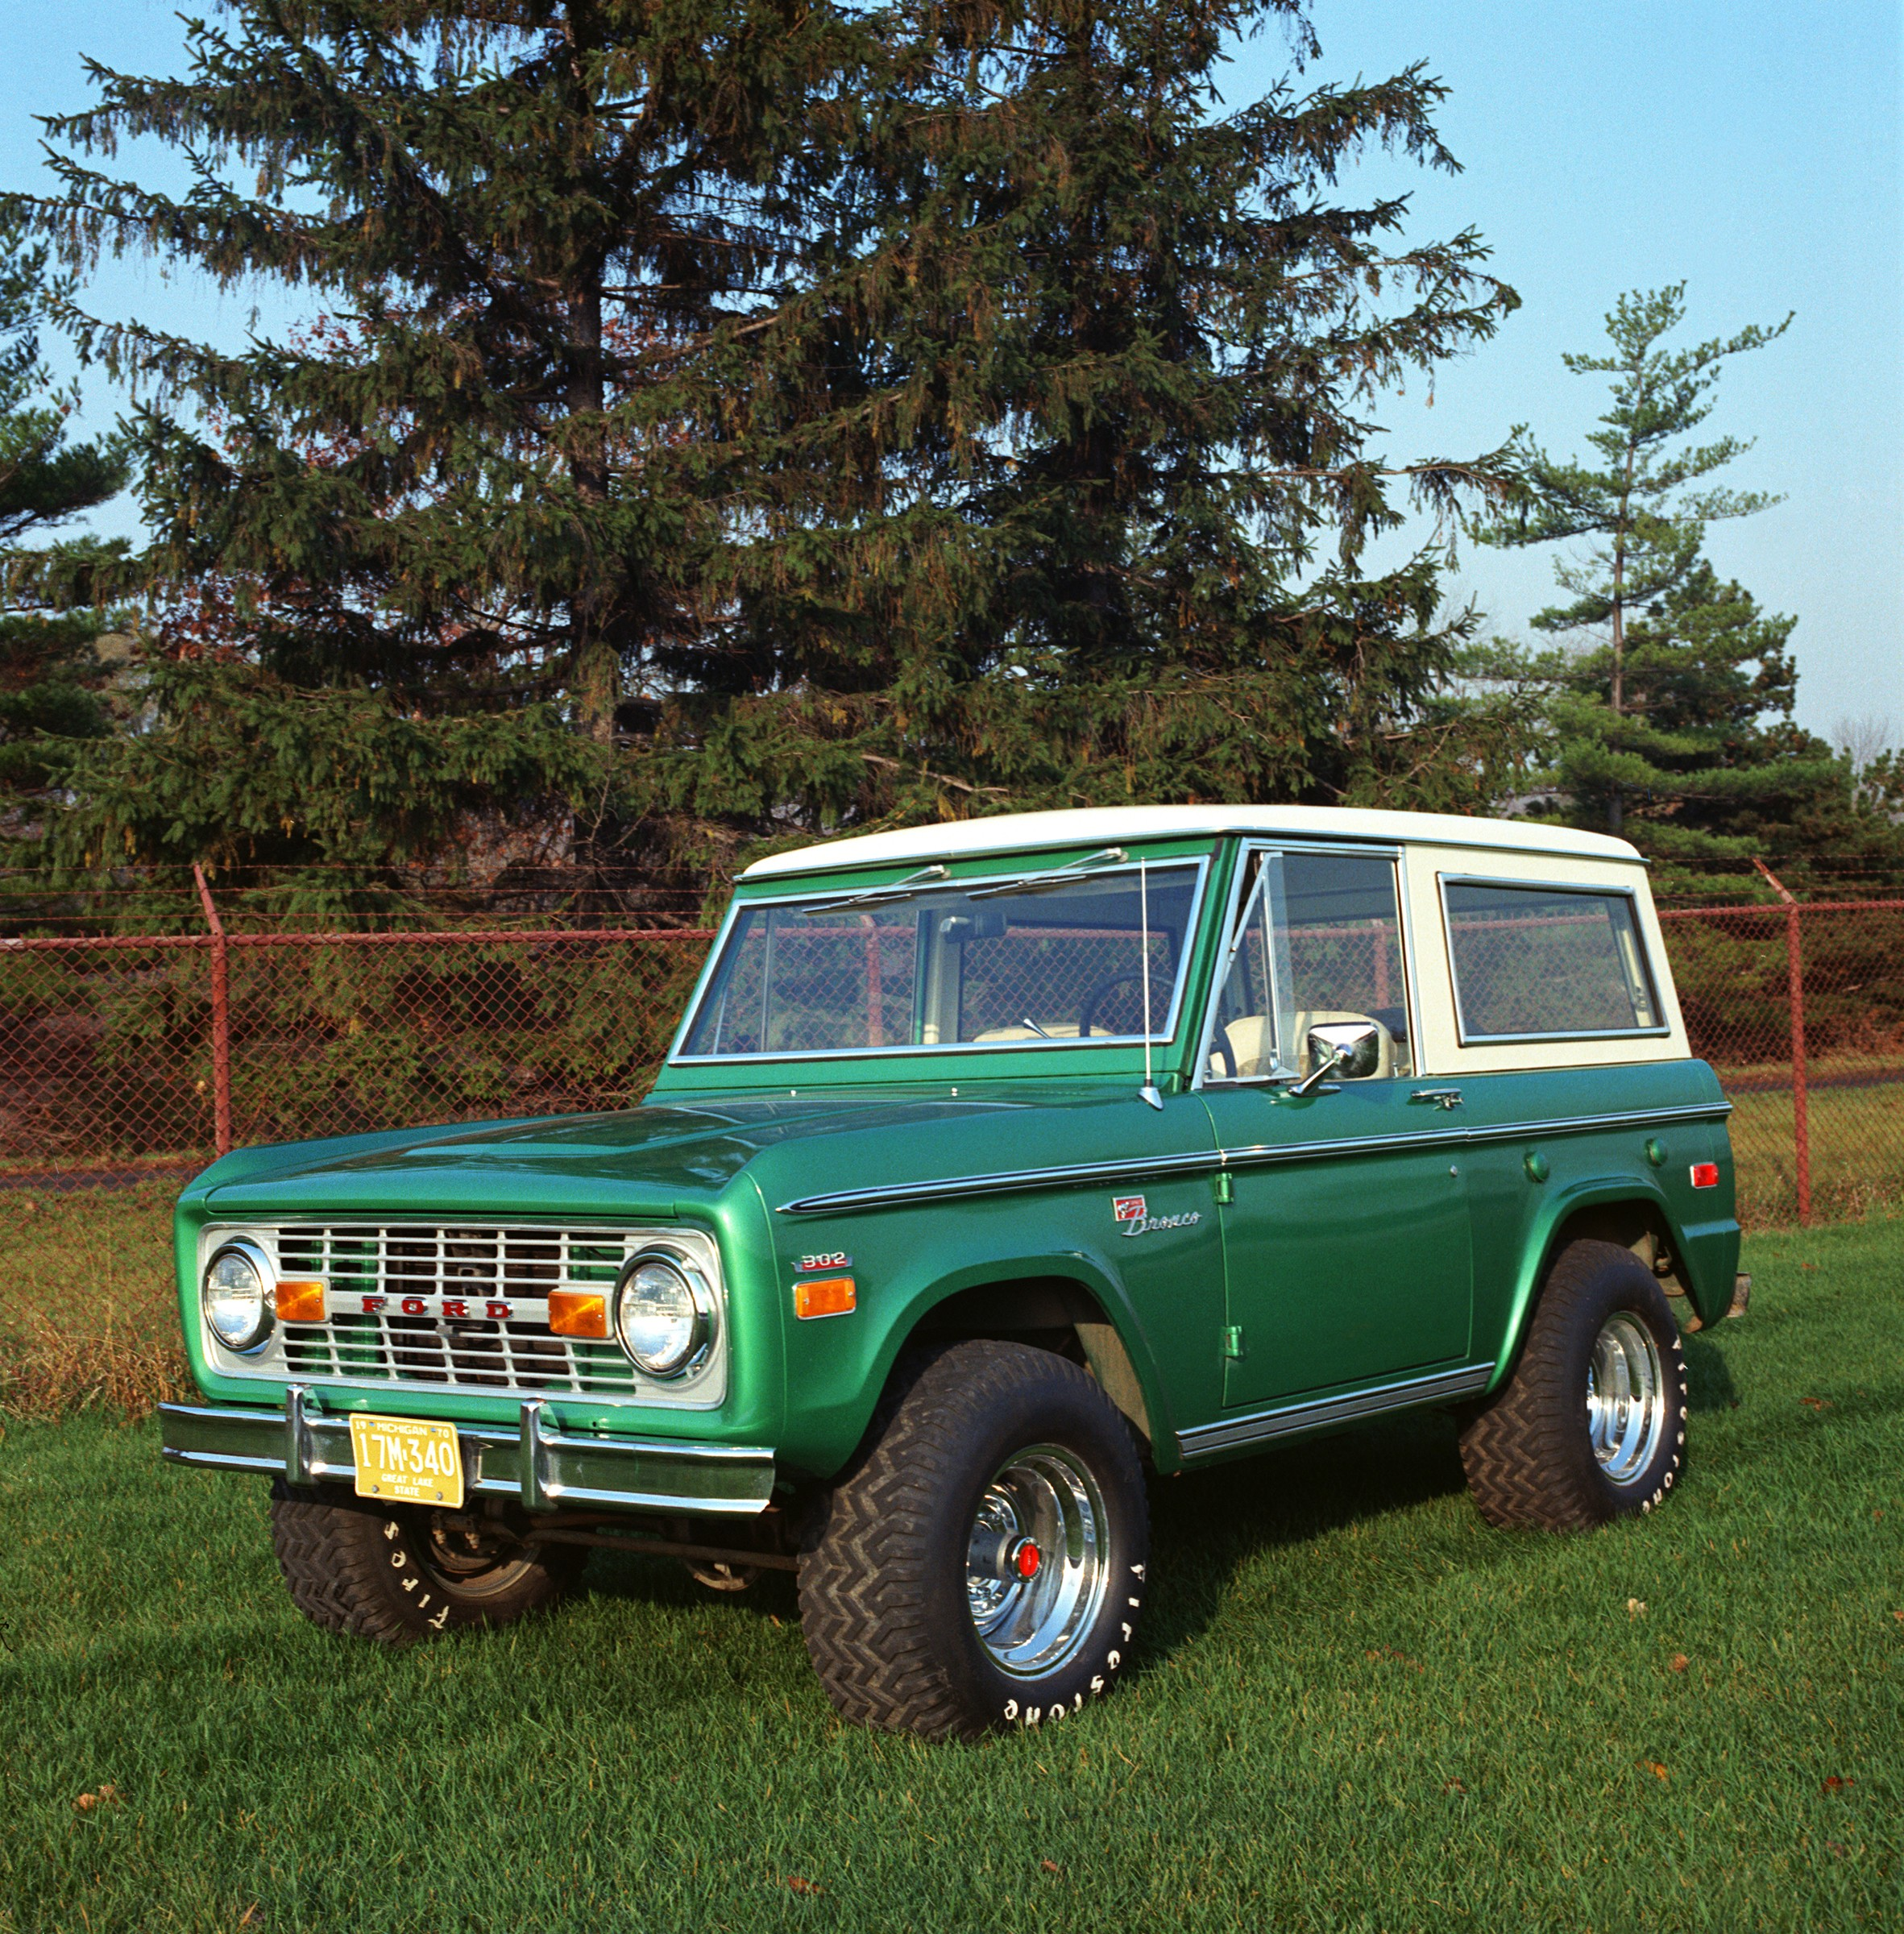 ford bronco - 1966  1967  1968  1969  1970  1971  1972  1973  1974  1975  1976  1977